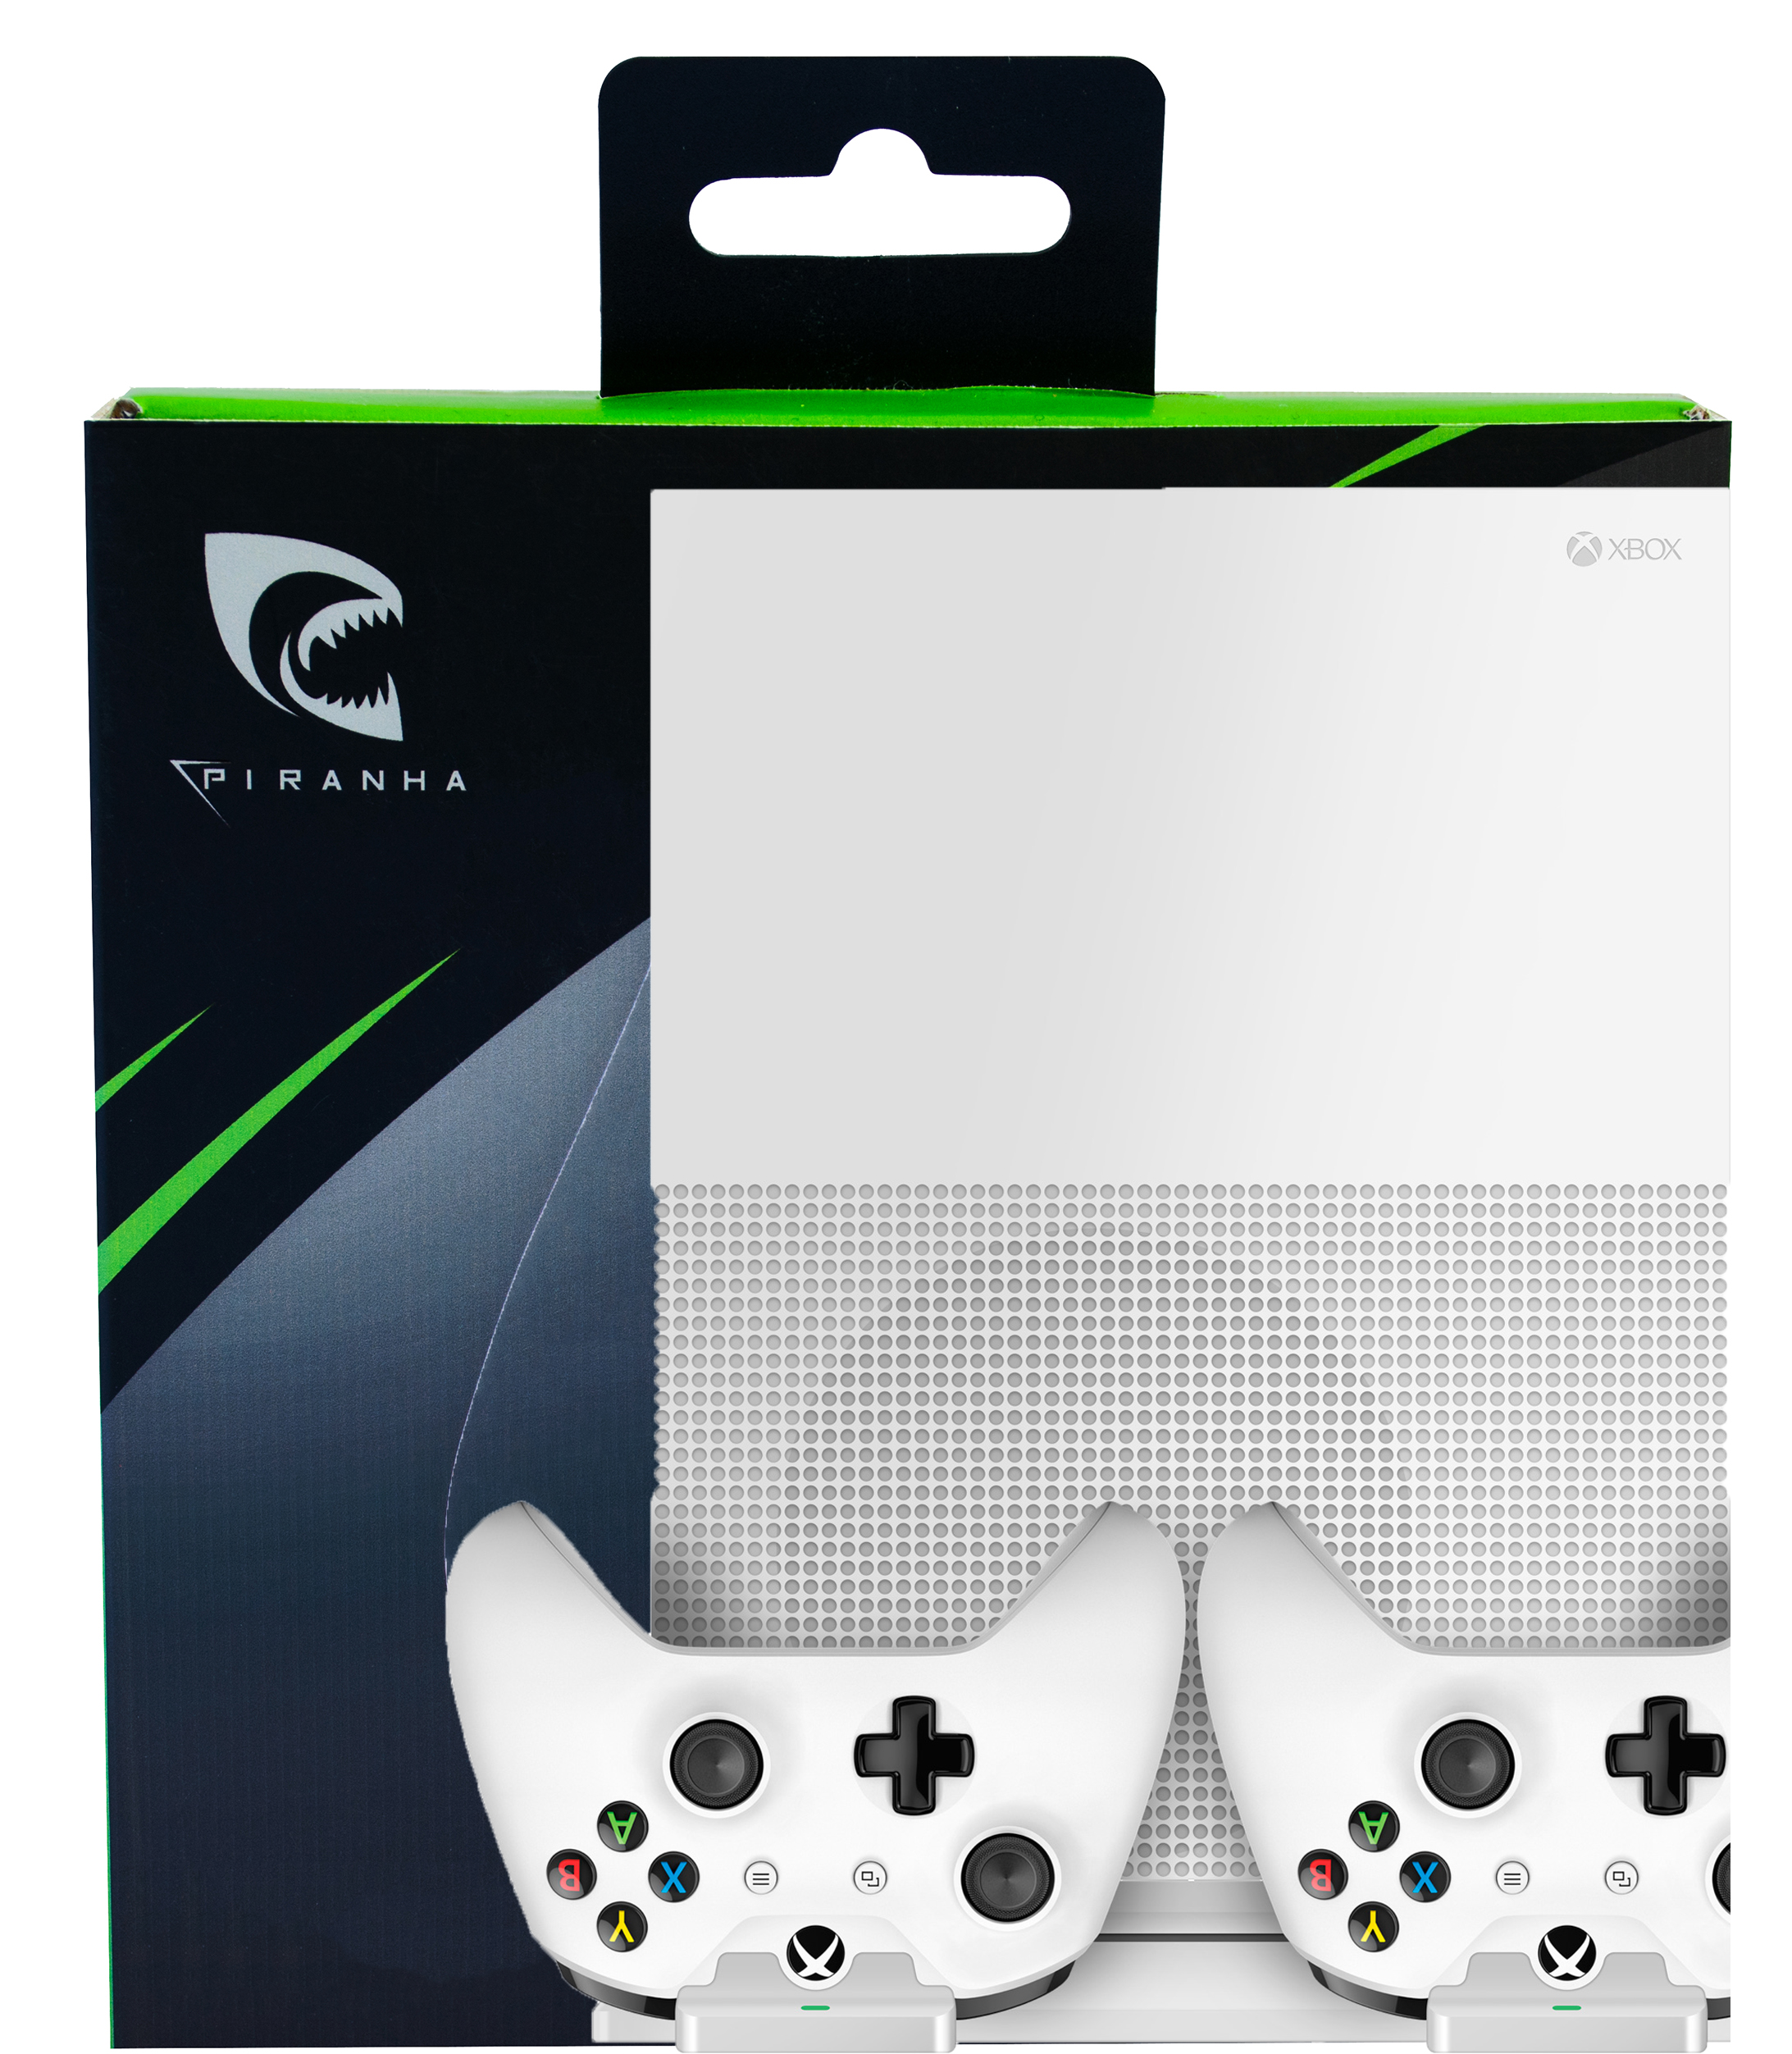 Piranha Xbox One S Base Stand Charger